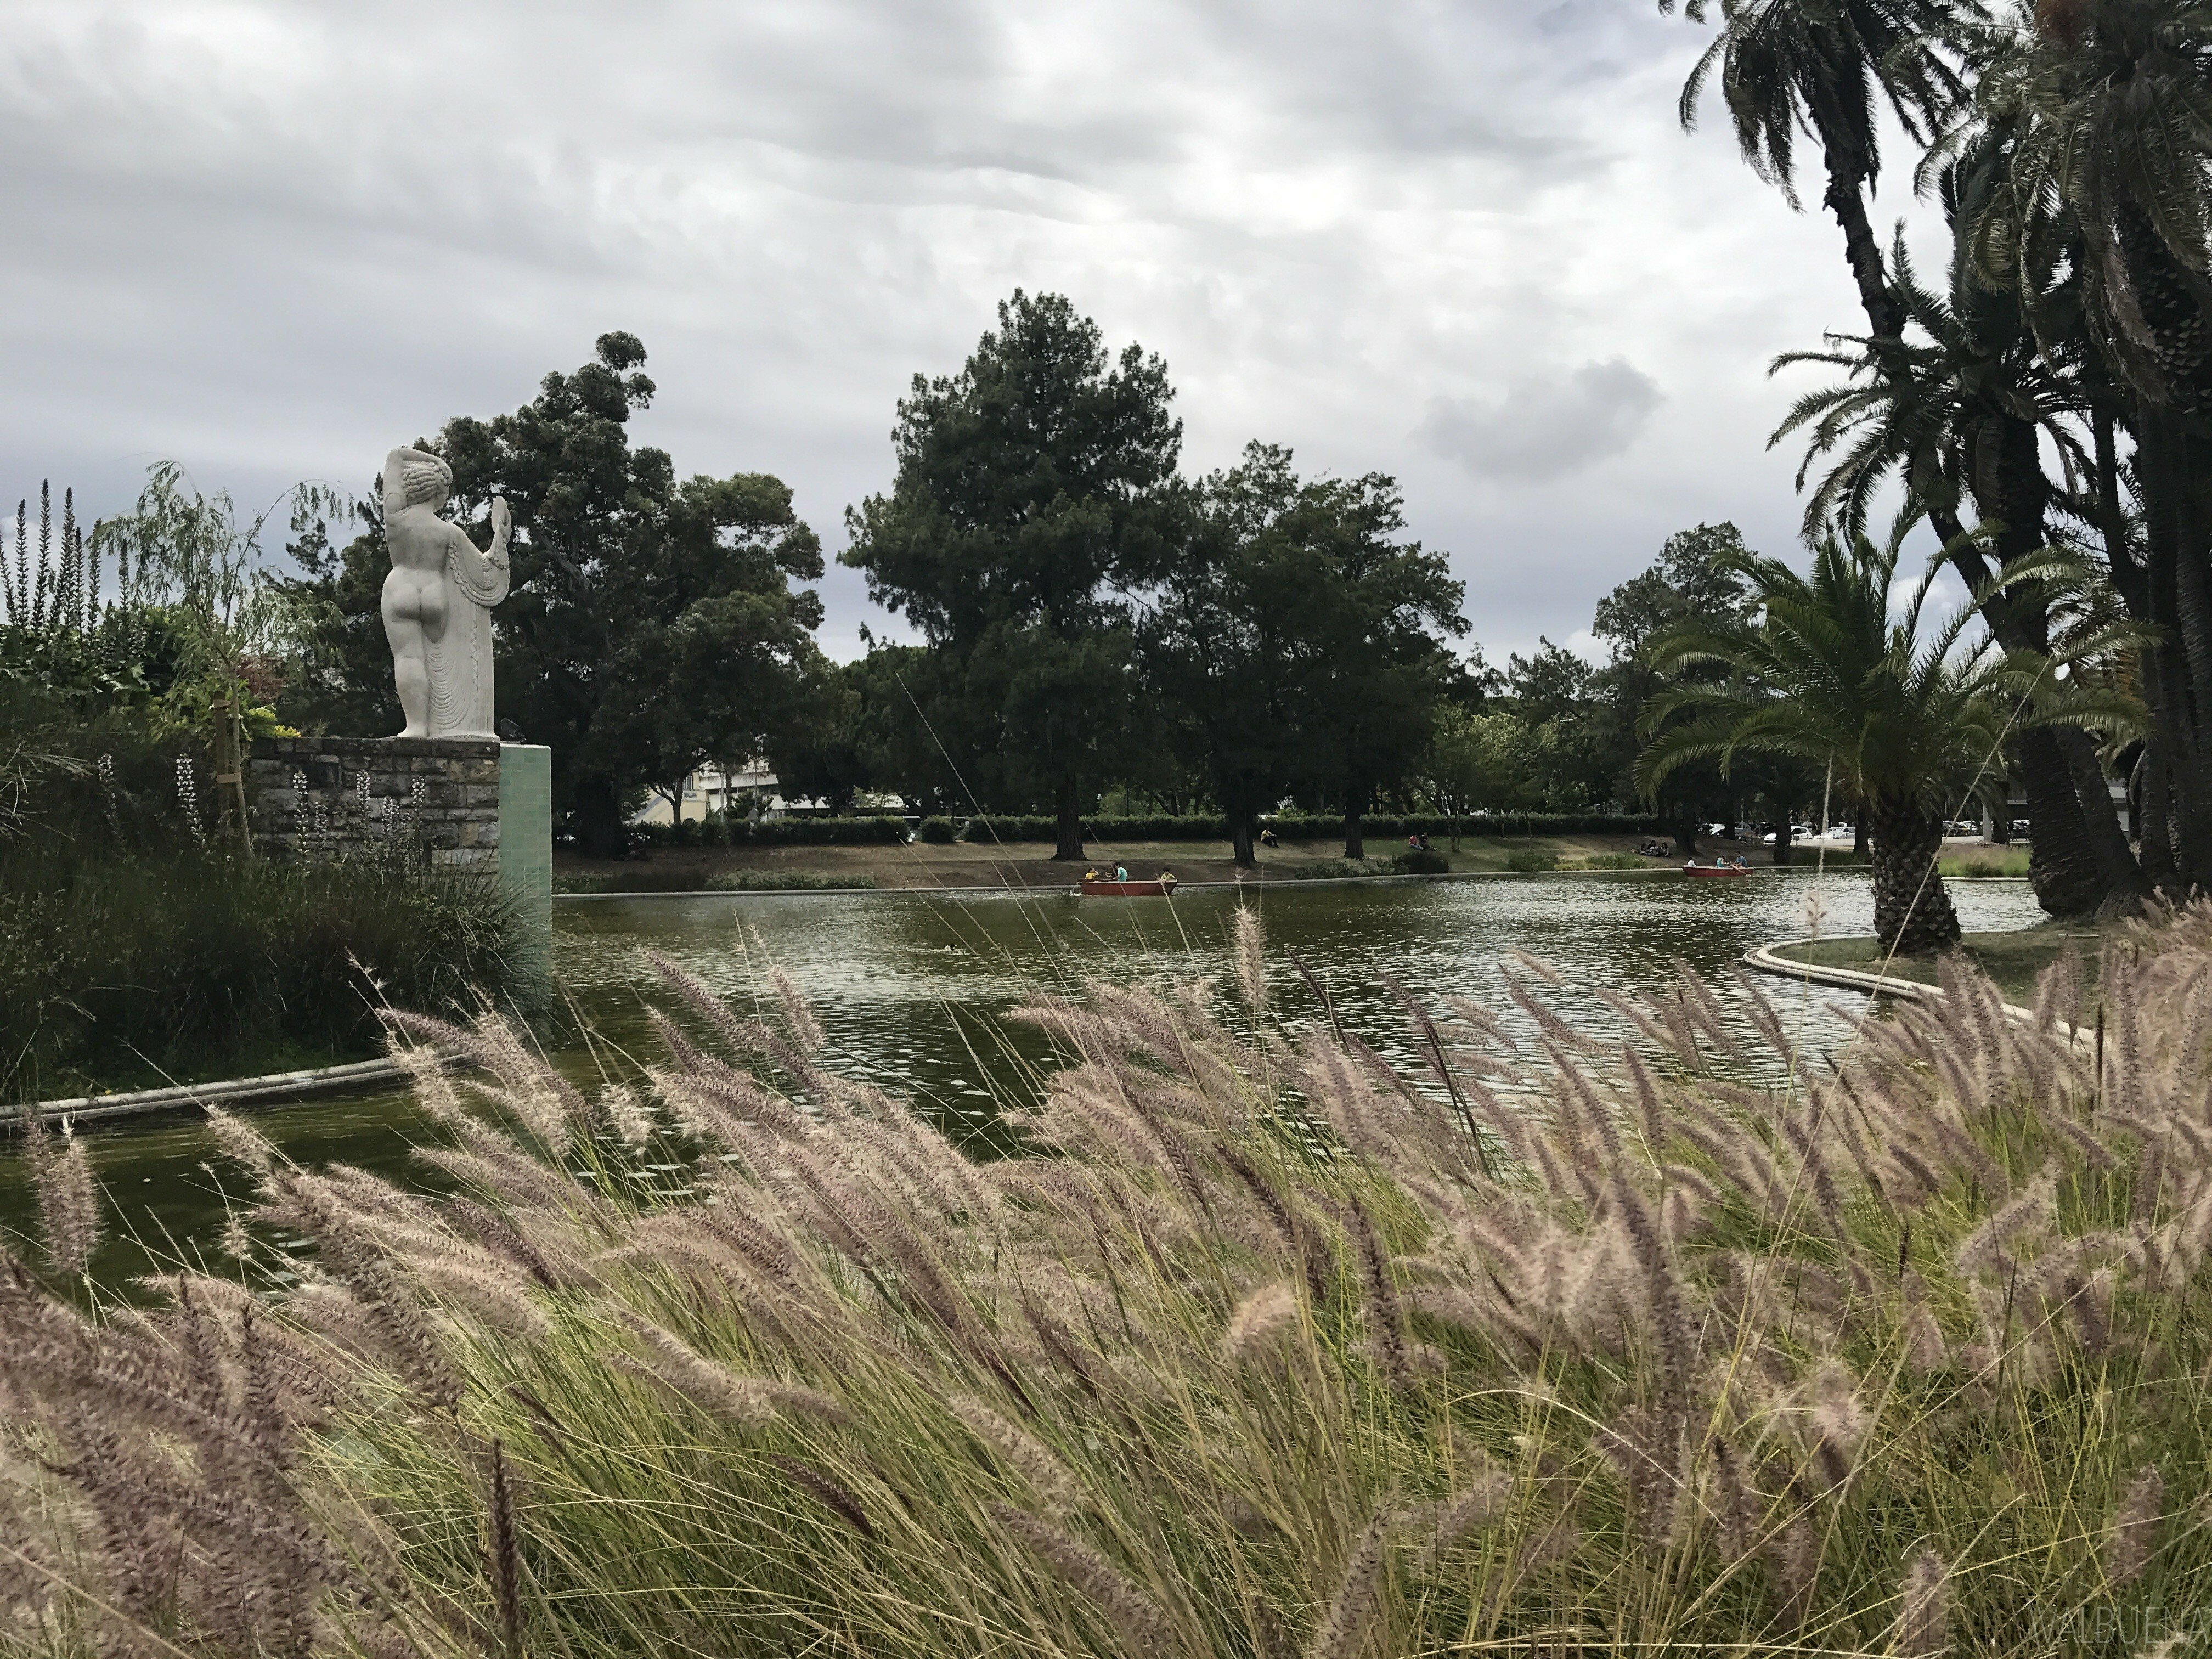 Campo grande park is a great place for families in Lisbon